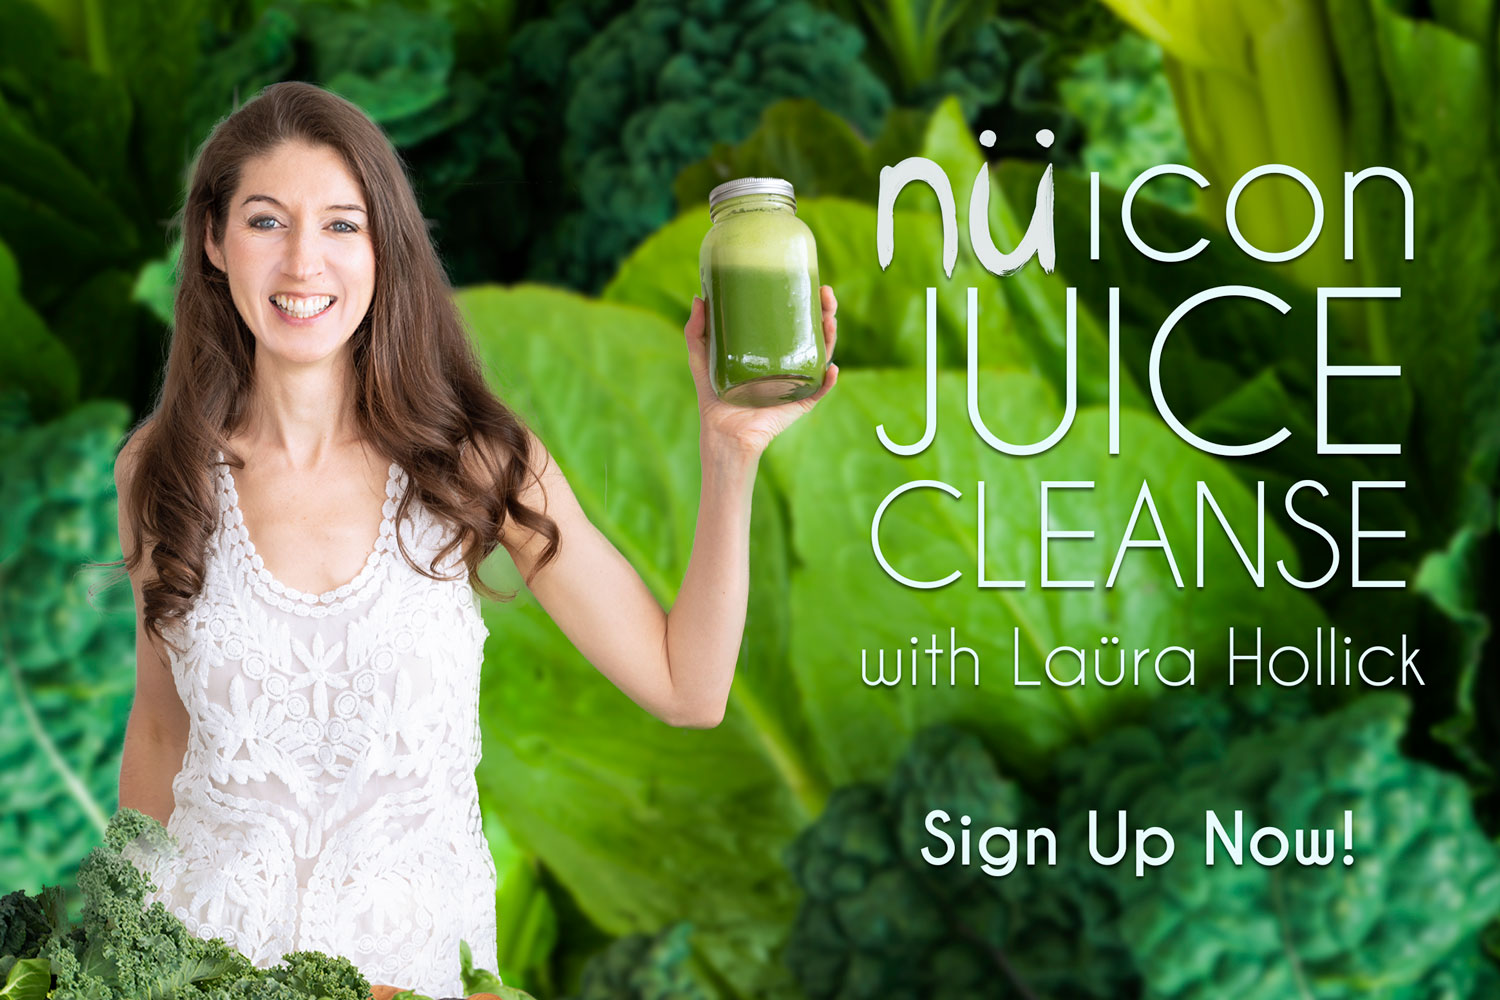 Sign up for the nü Icon Juice Cleanse